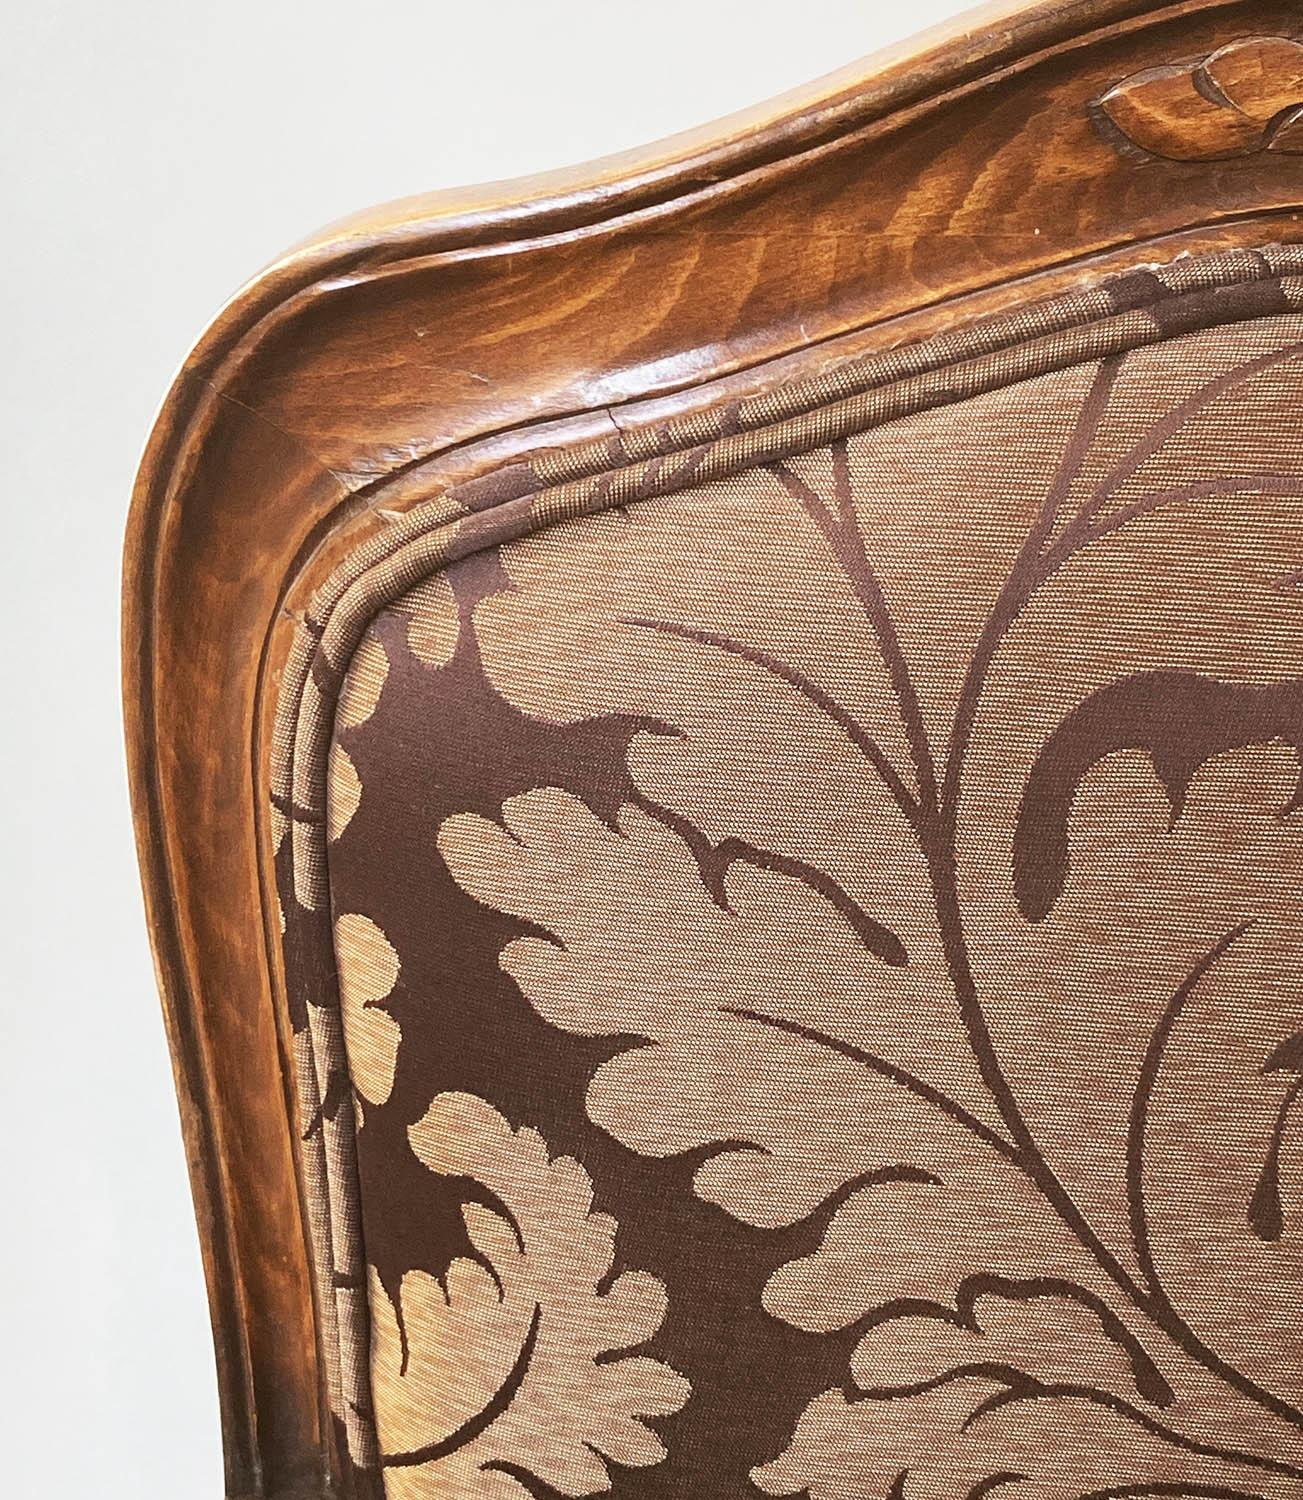 FAUTEUILS, a pair, French Louis XV style, stained walnut, with two tone brown leaf silk - Image 5 of 9